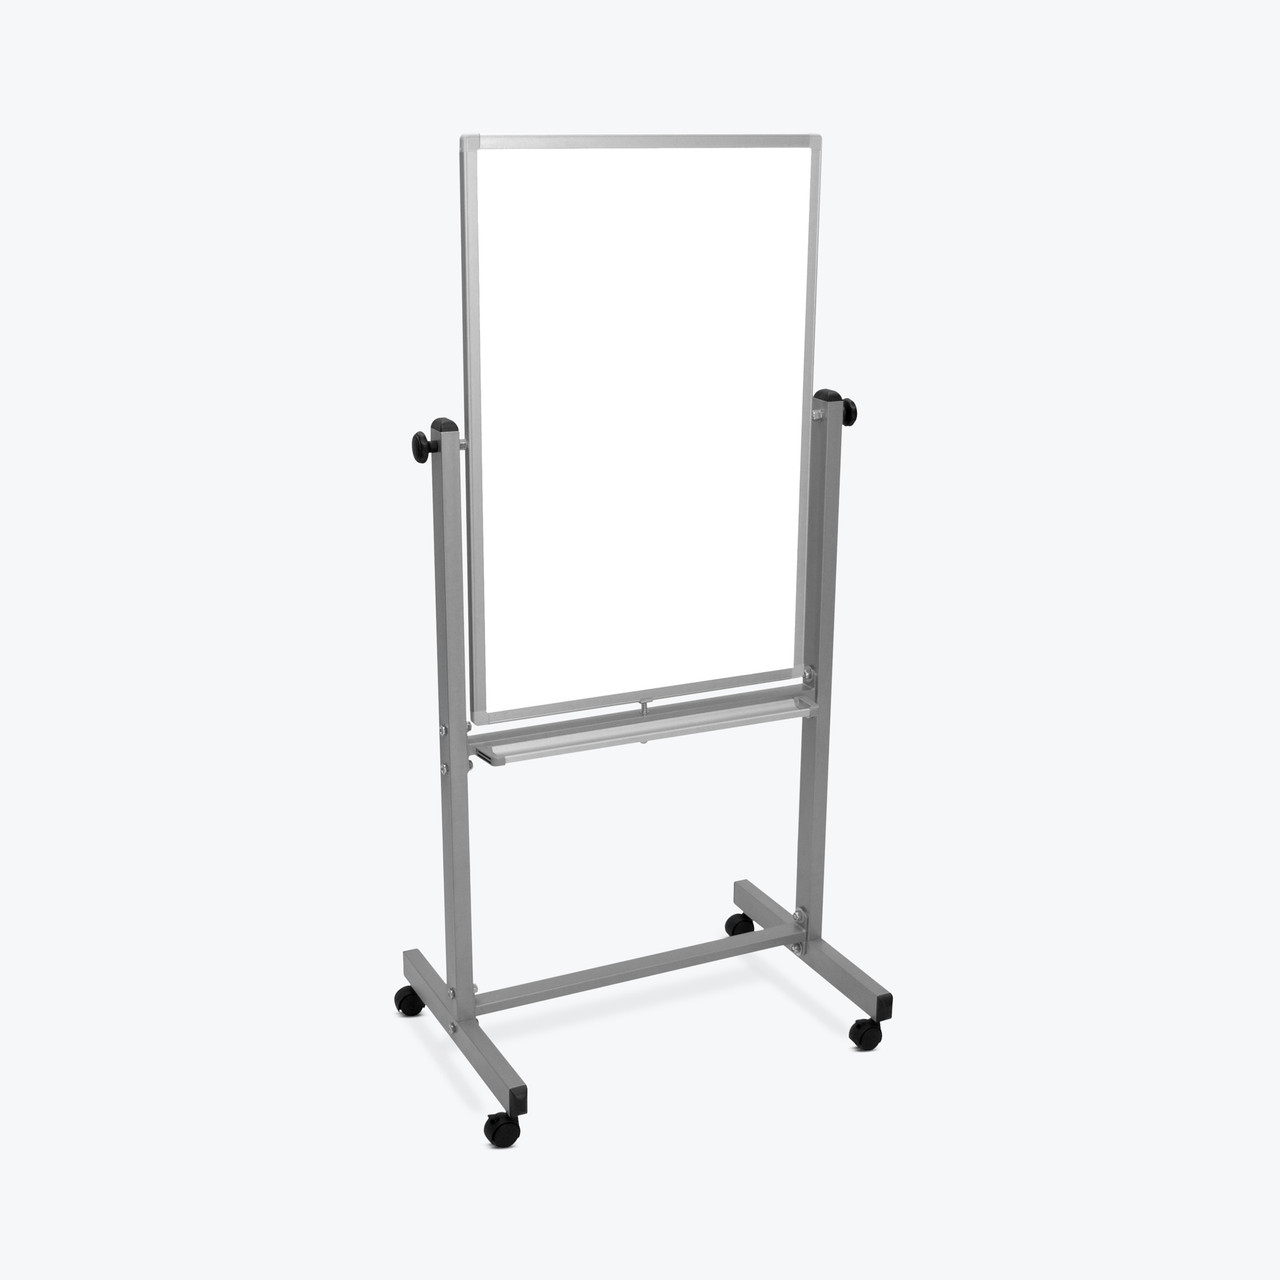 24x36 Mobile Whiteboard L270